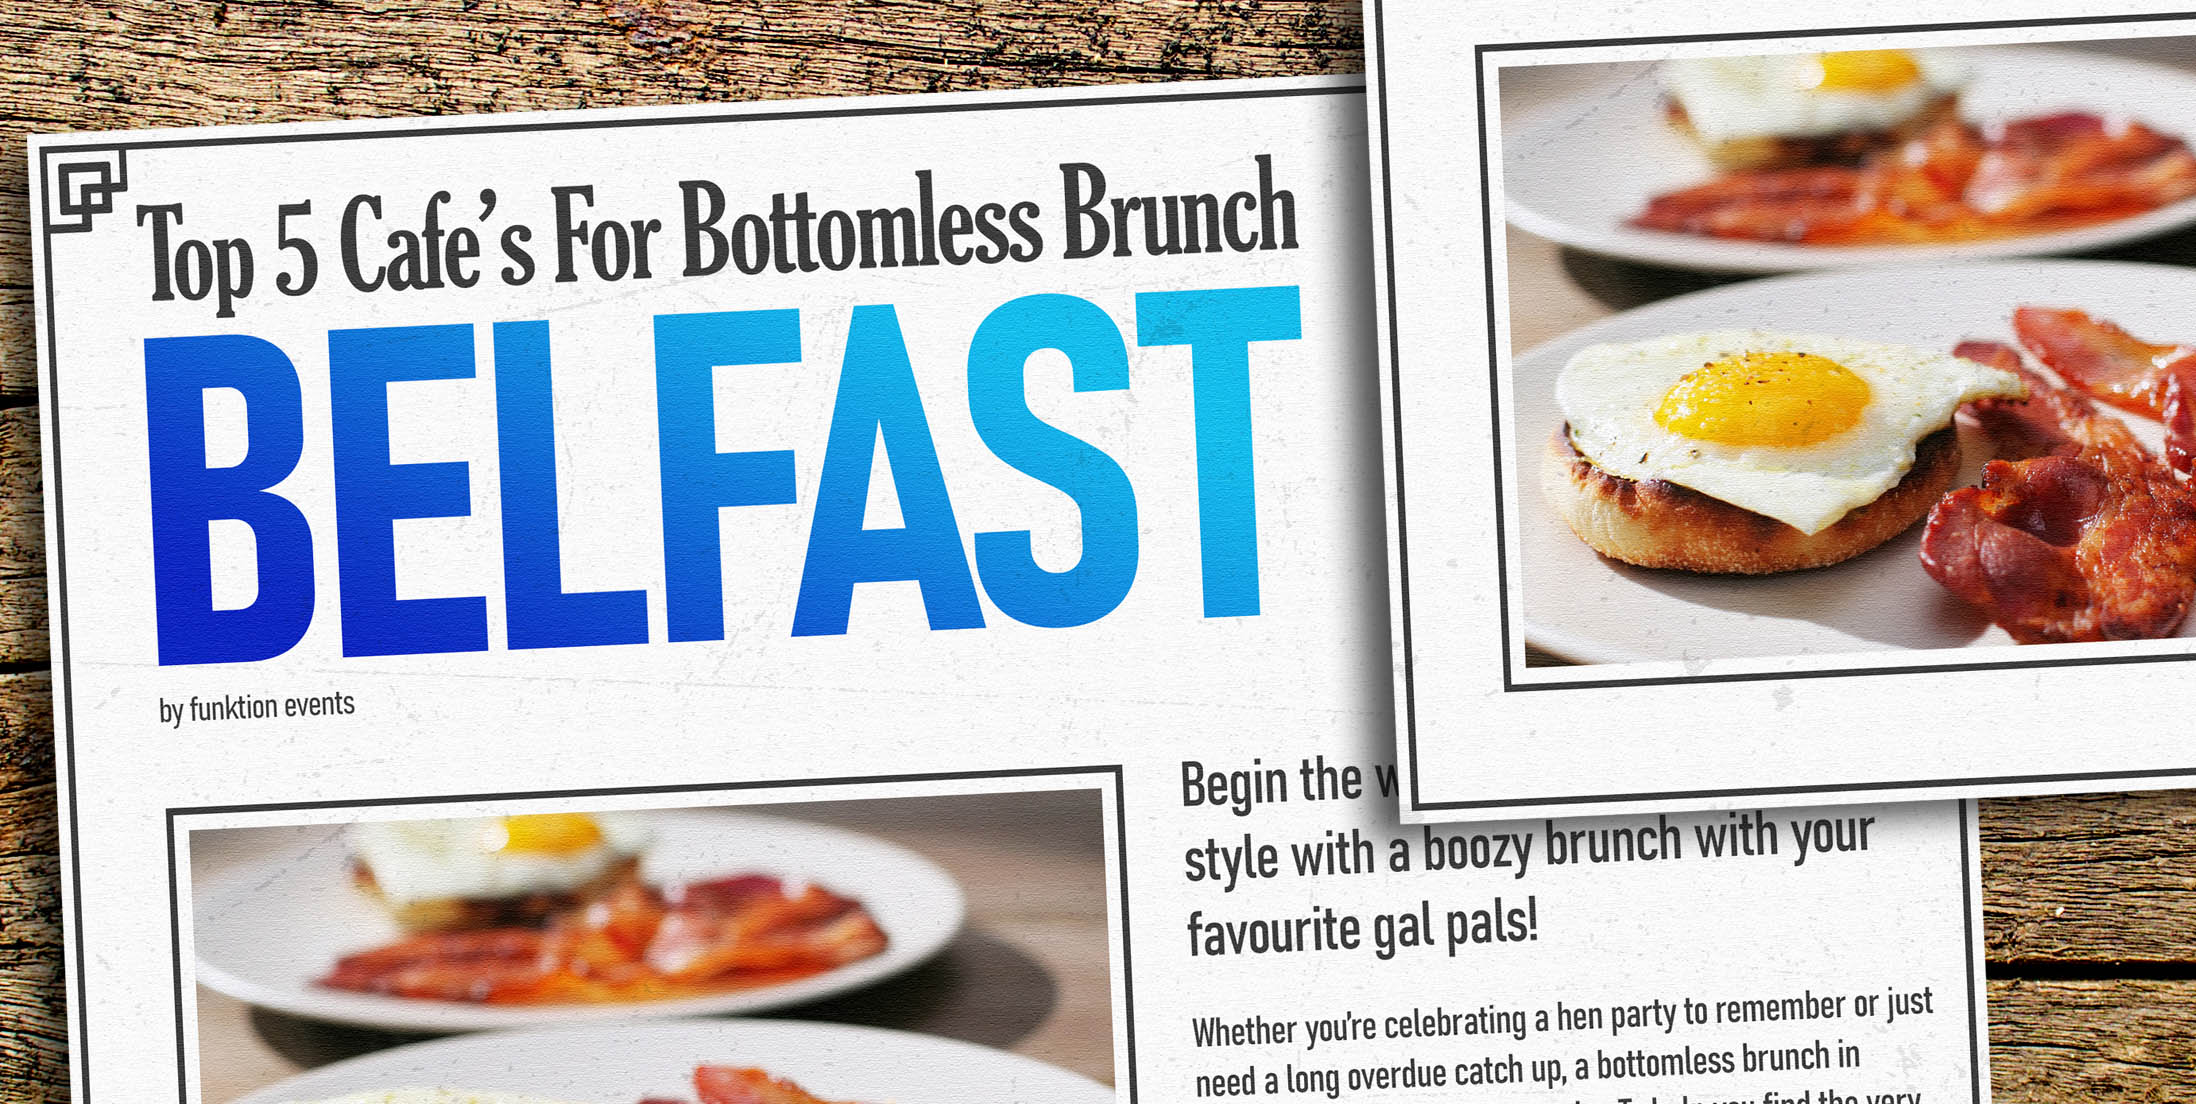 The Top 5 Cafe's for Bottomless Brunch in Belfast